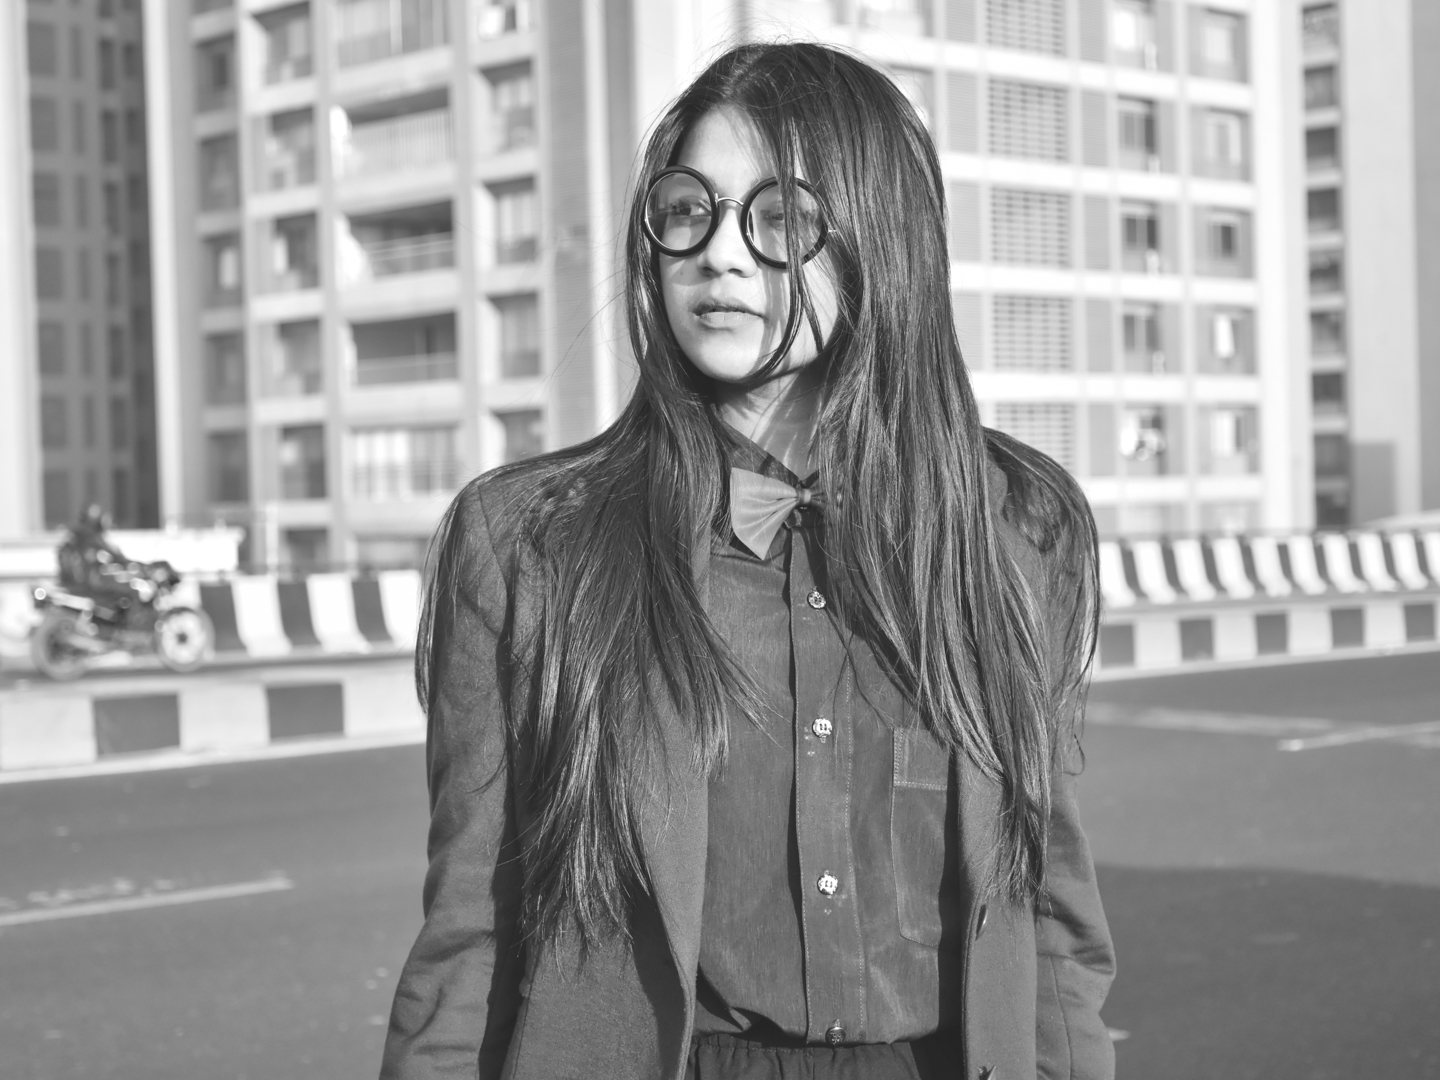 Dhruvyasha of Svachchhara | Ethical Influencers